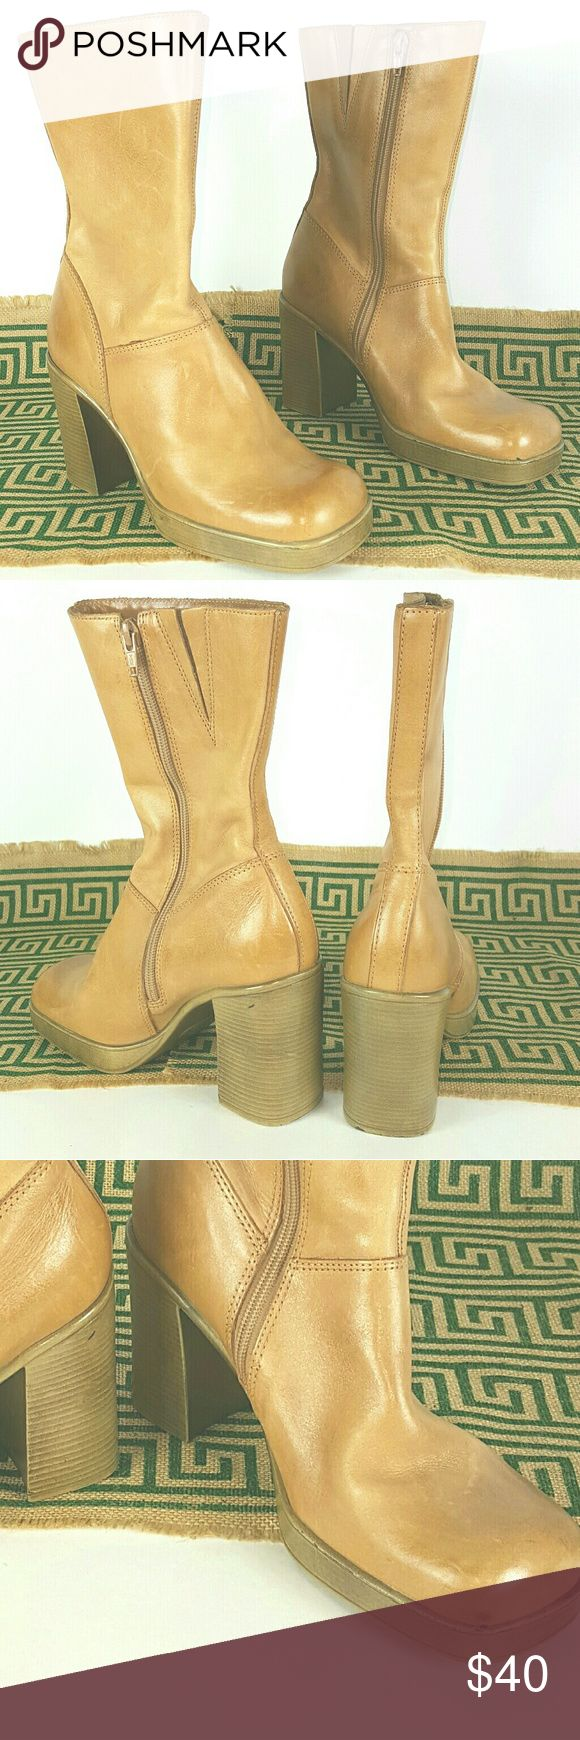 Steve Madden Free Tan Leather Boots, SZ 9.5 Never Worn Steve Madden Free Tan Leather Boots,  Size 9.5, structurally sound with few scuff spots as pictured. Steve Madden Shoes Ankle Boots & Booties